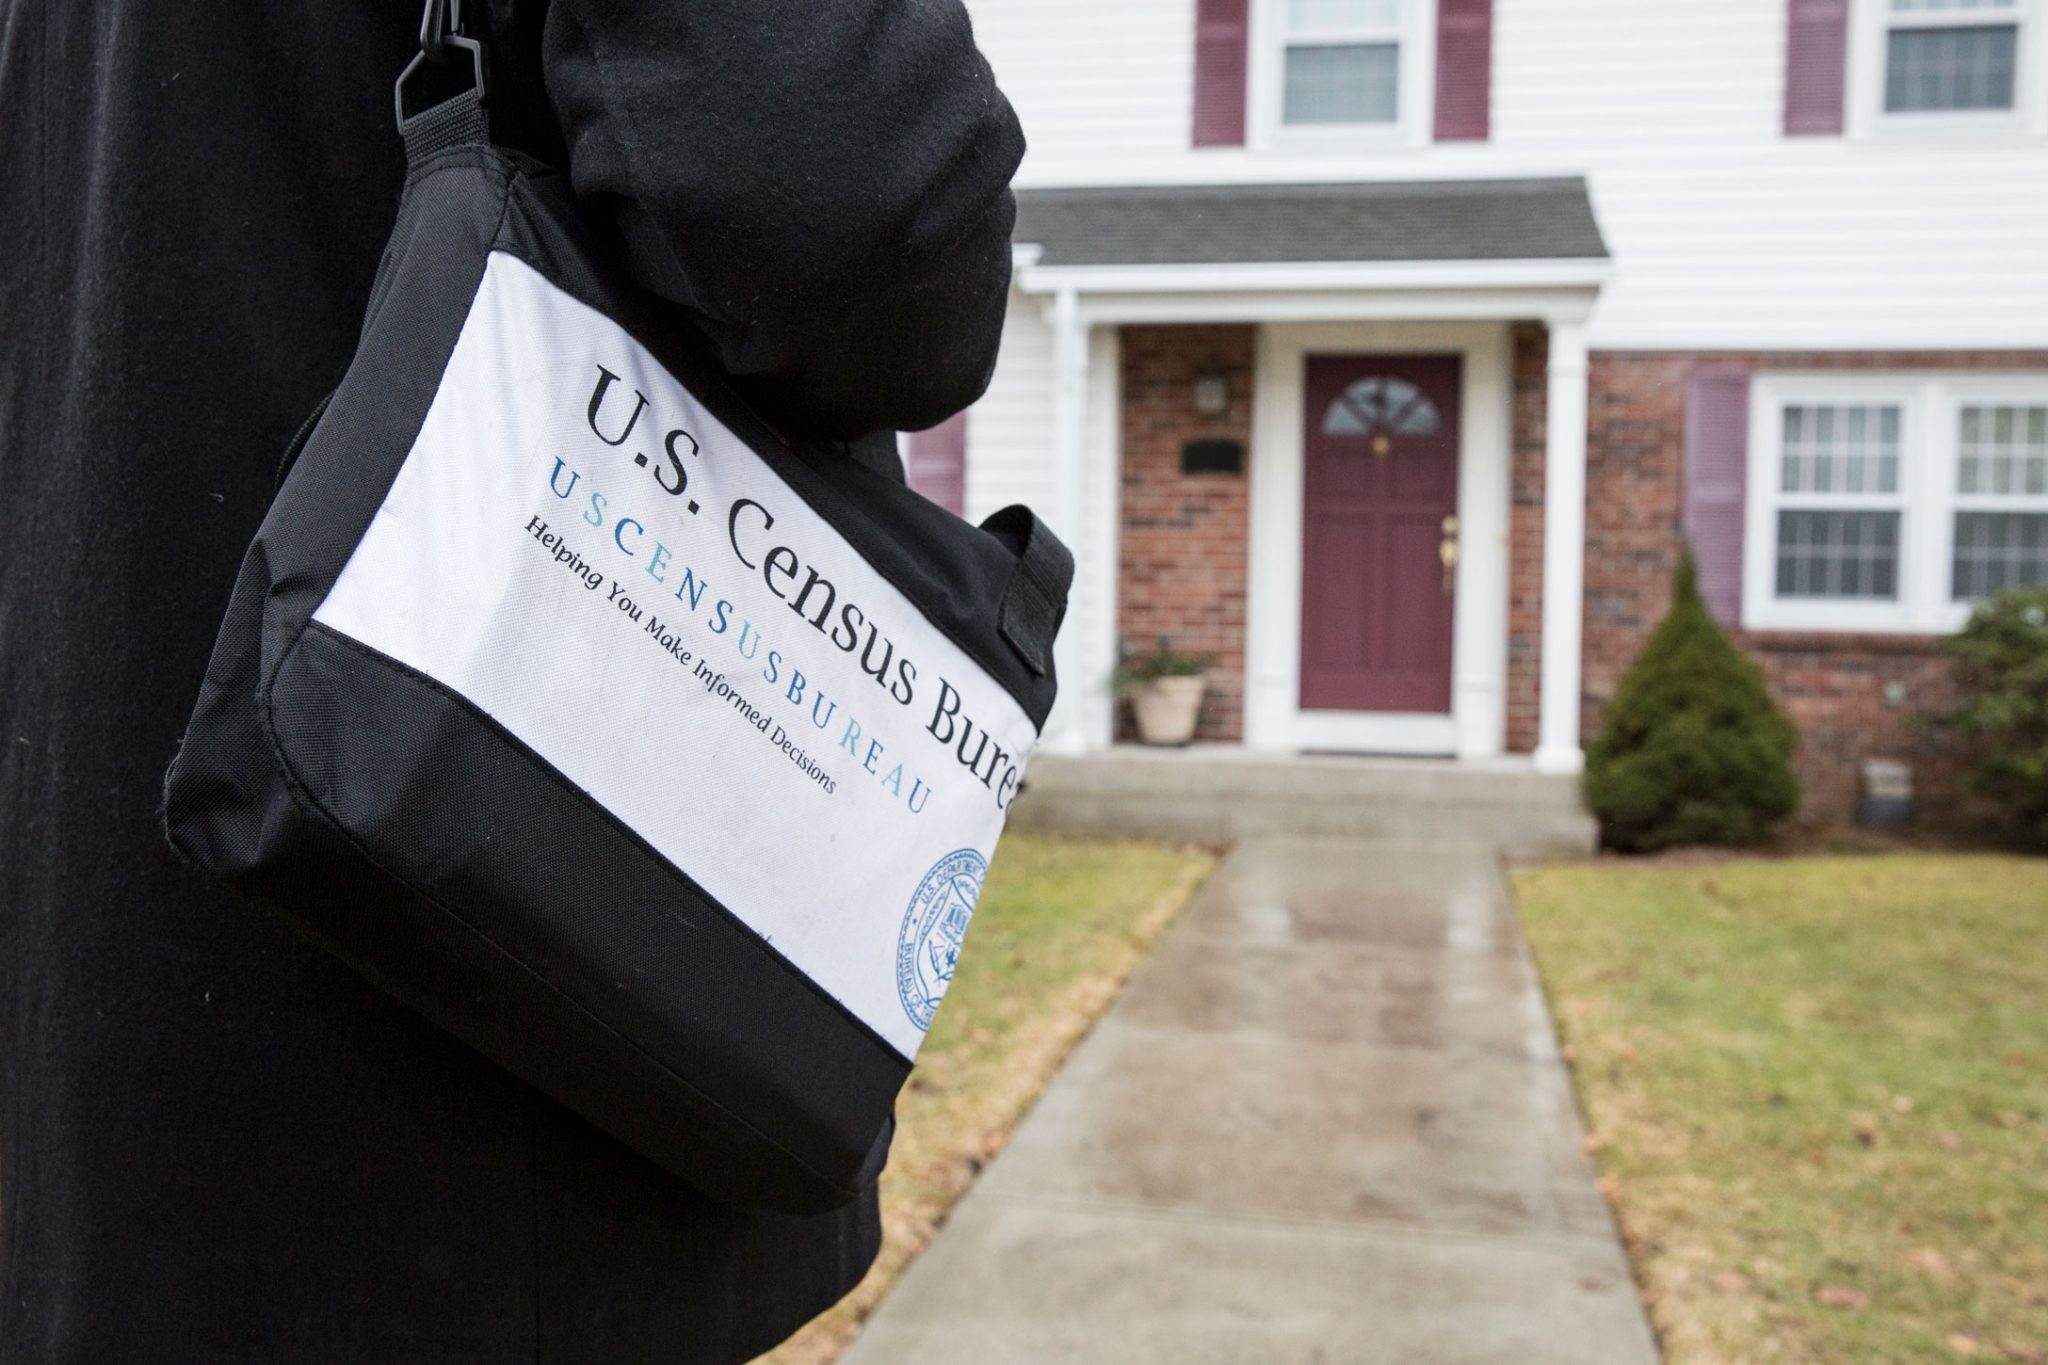 What to expect for the 2020 U.S. Census